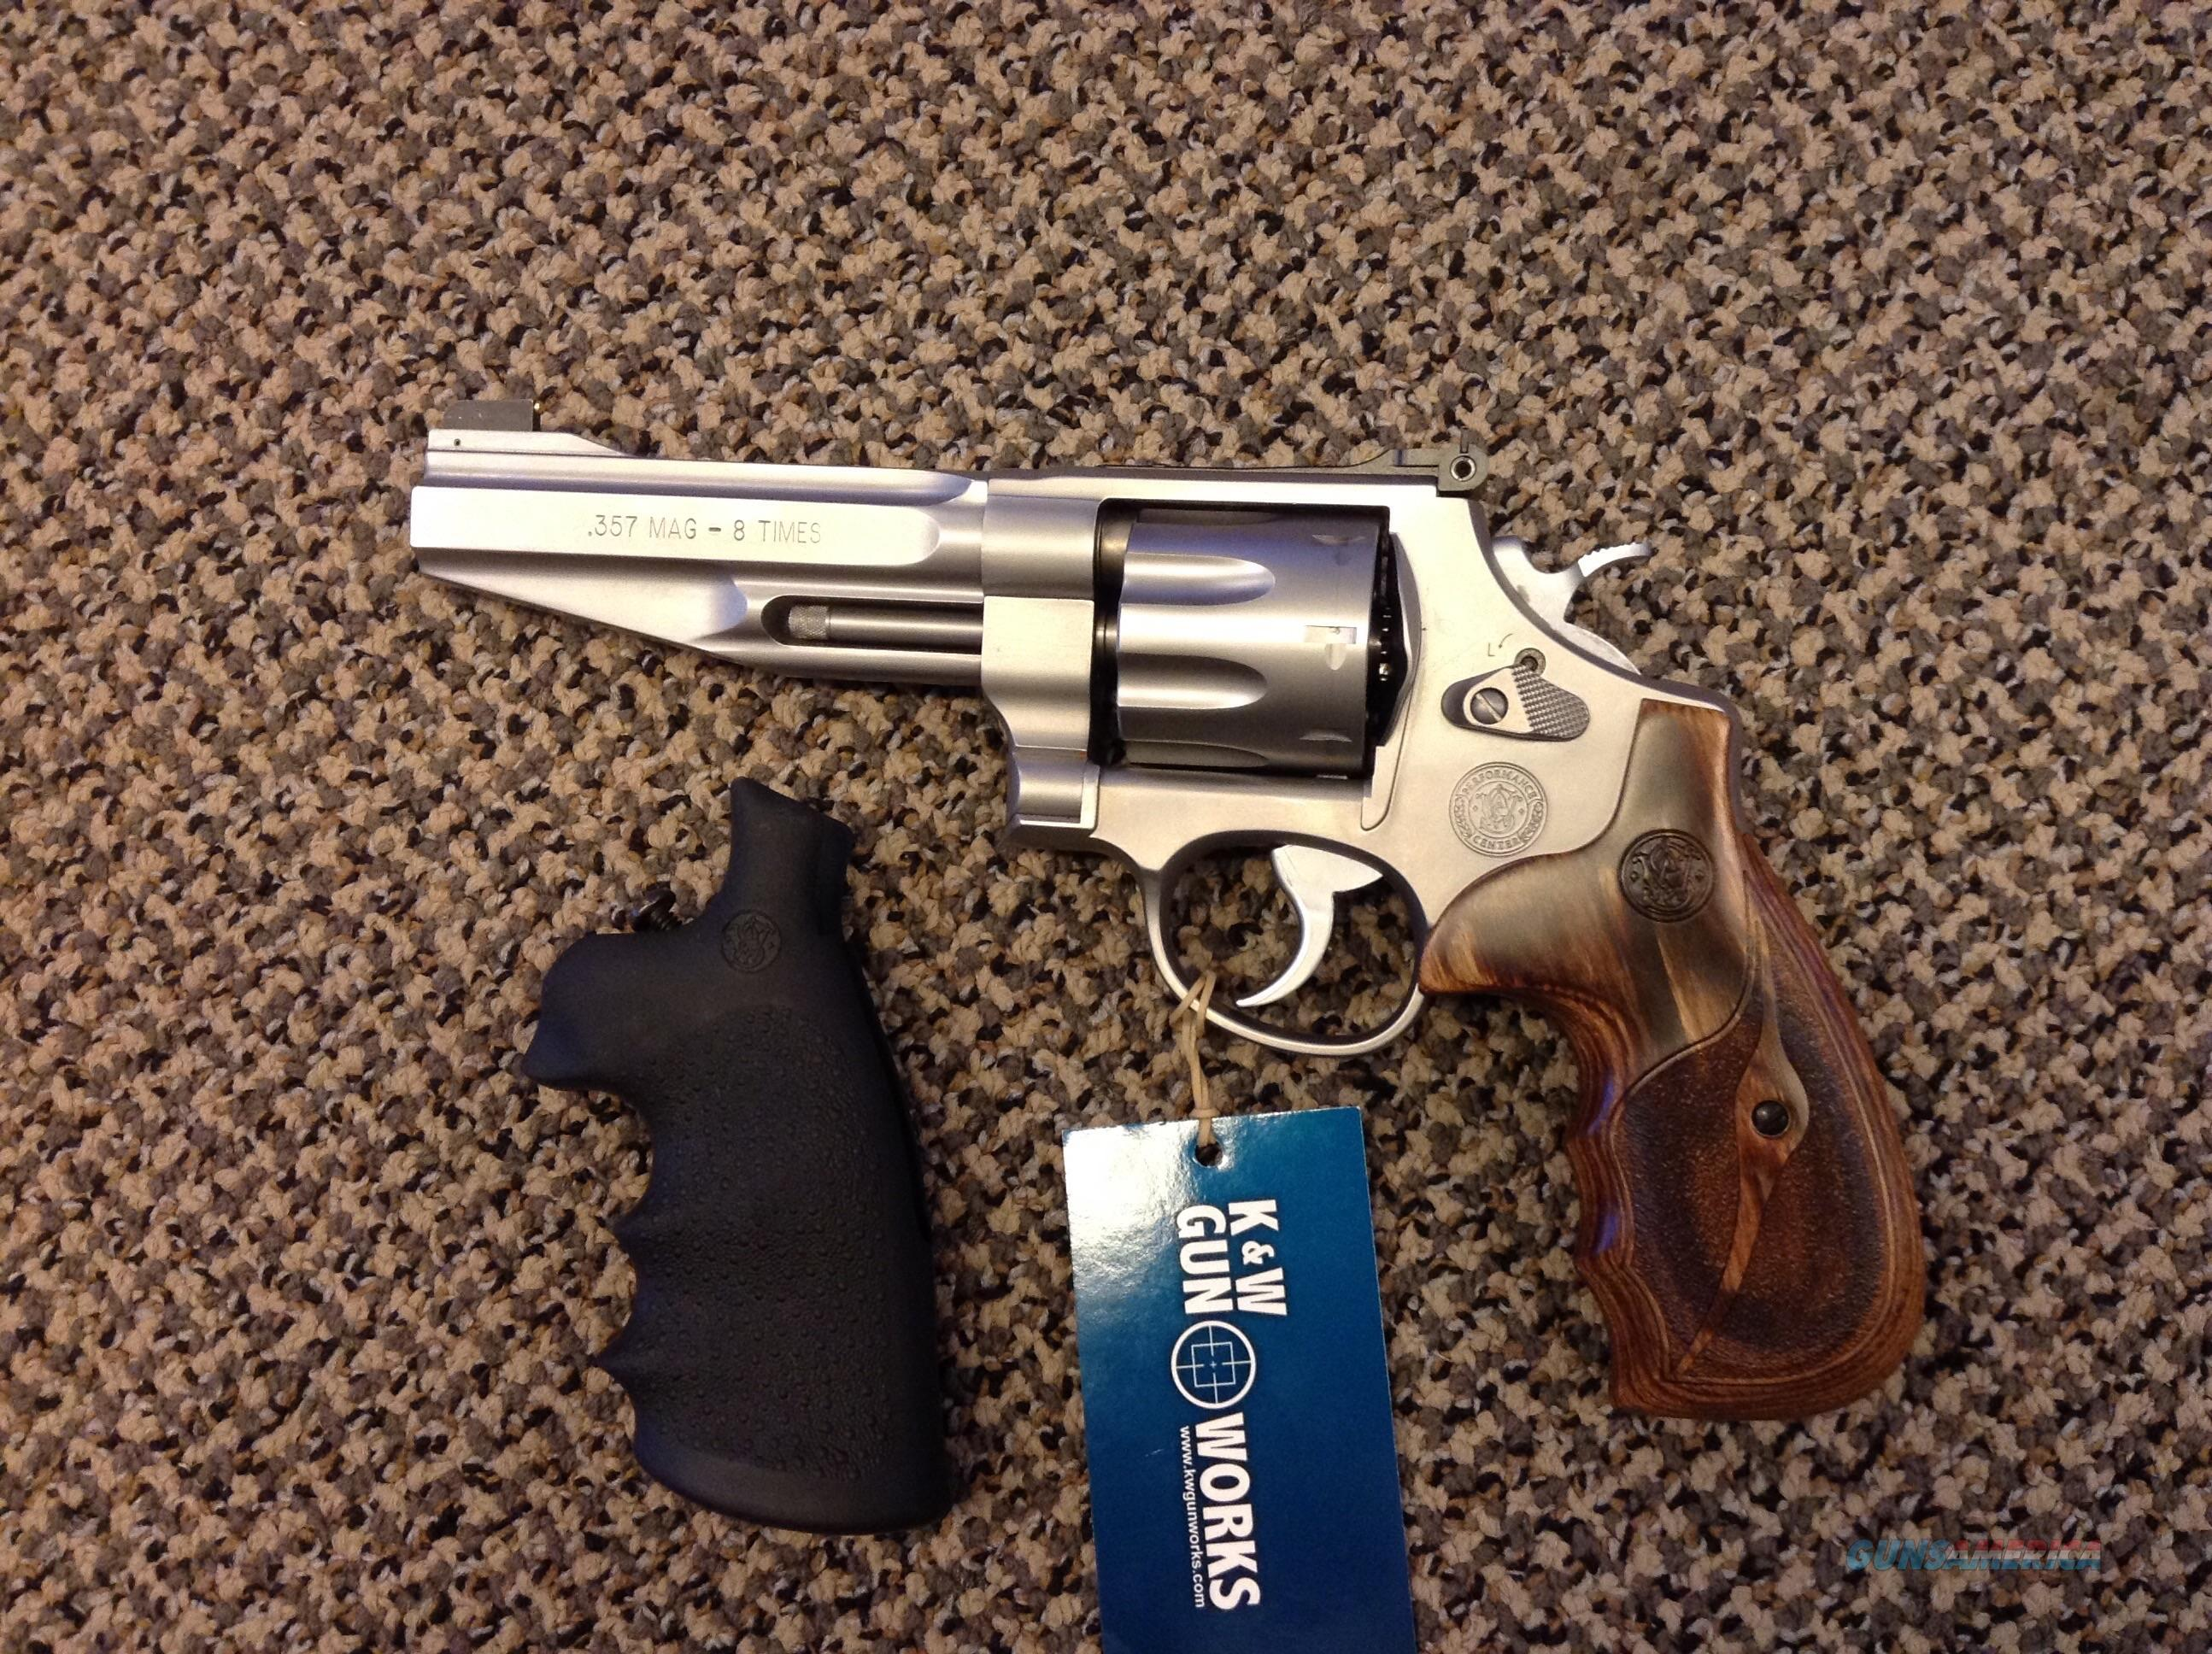 S&W MODEL 627 PERFORMANCE CENTER .357 MAGNUM 5 INCH BBL 8 SHOT NEW IN BOX  Guns > Pistols > Smith & Wesson Revolvers > Performance Center